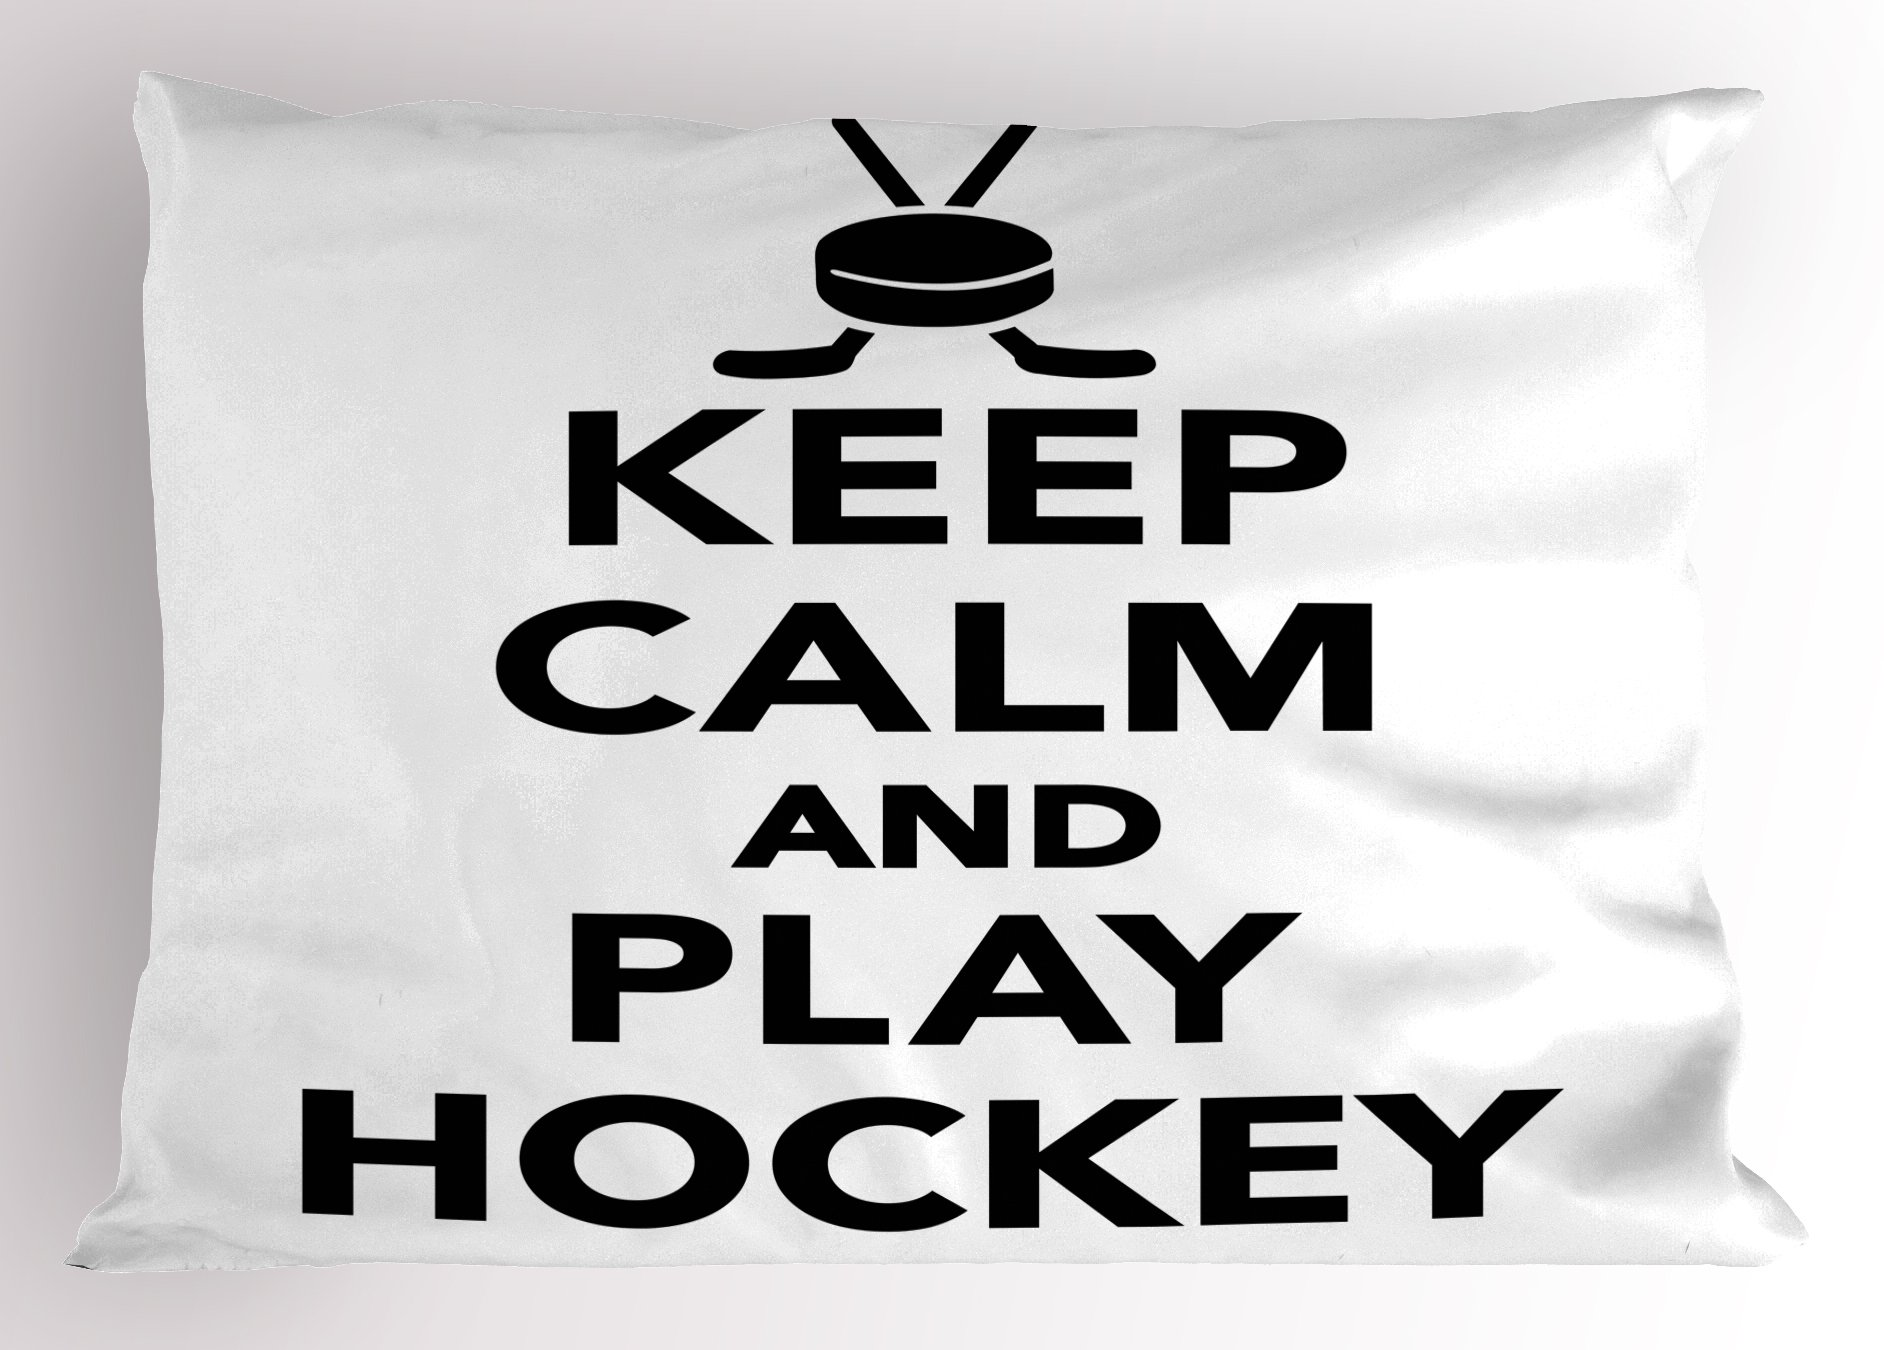 Ambesonne Hockey Pillow Sham, Keep Calm and Play Hockey Quote with Sticks in Black and White Competition Sports, Decorative Standard Queen Size Printed Pillowcase, Multi 1, 30'' W By 20'' L